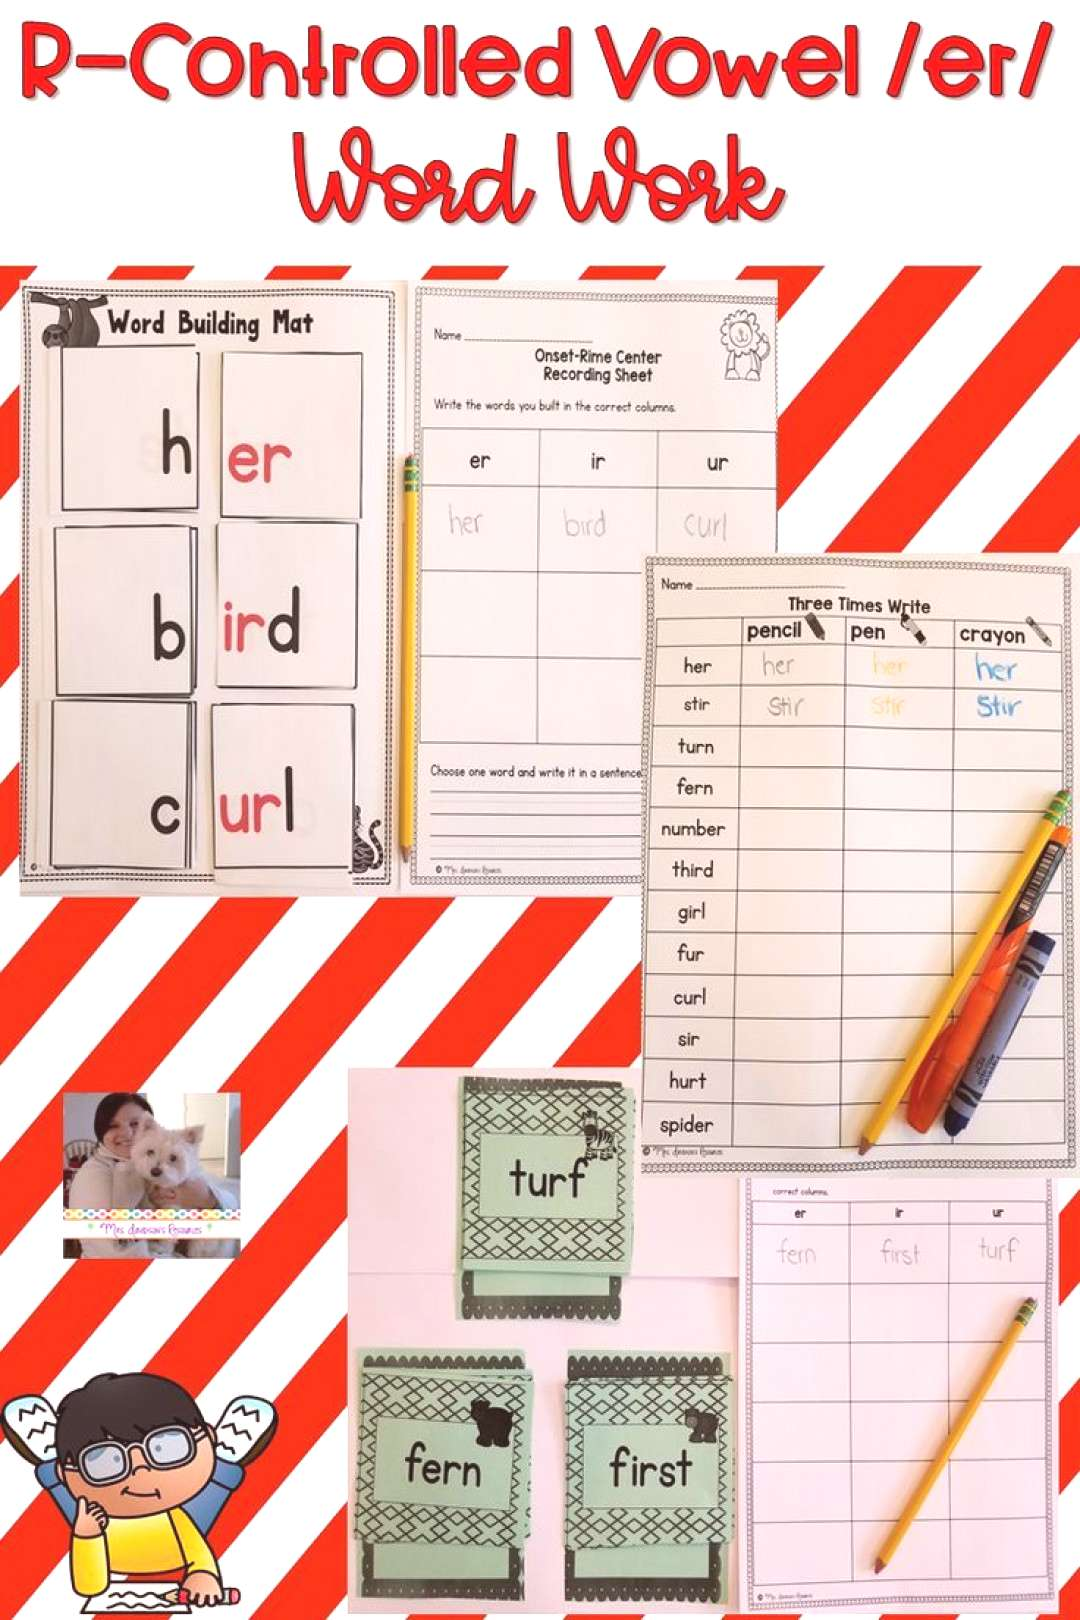 R Controlled Vowel er Word Work These hands-on and engaging r-controlled vowel /er/ word work activ